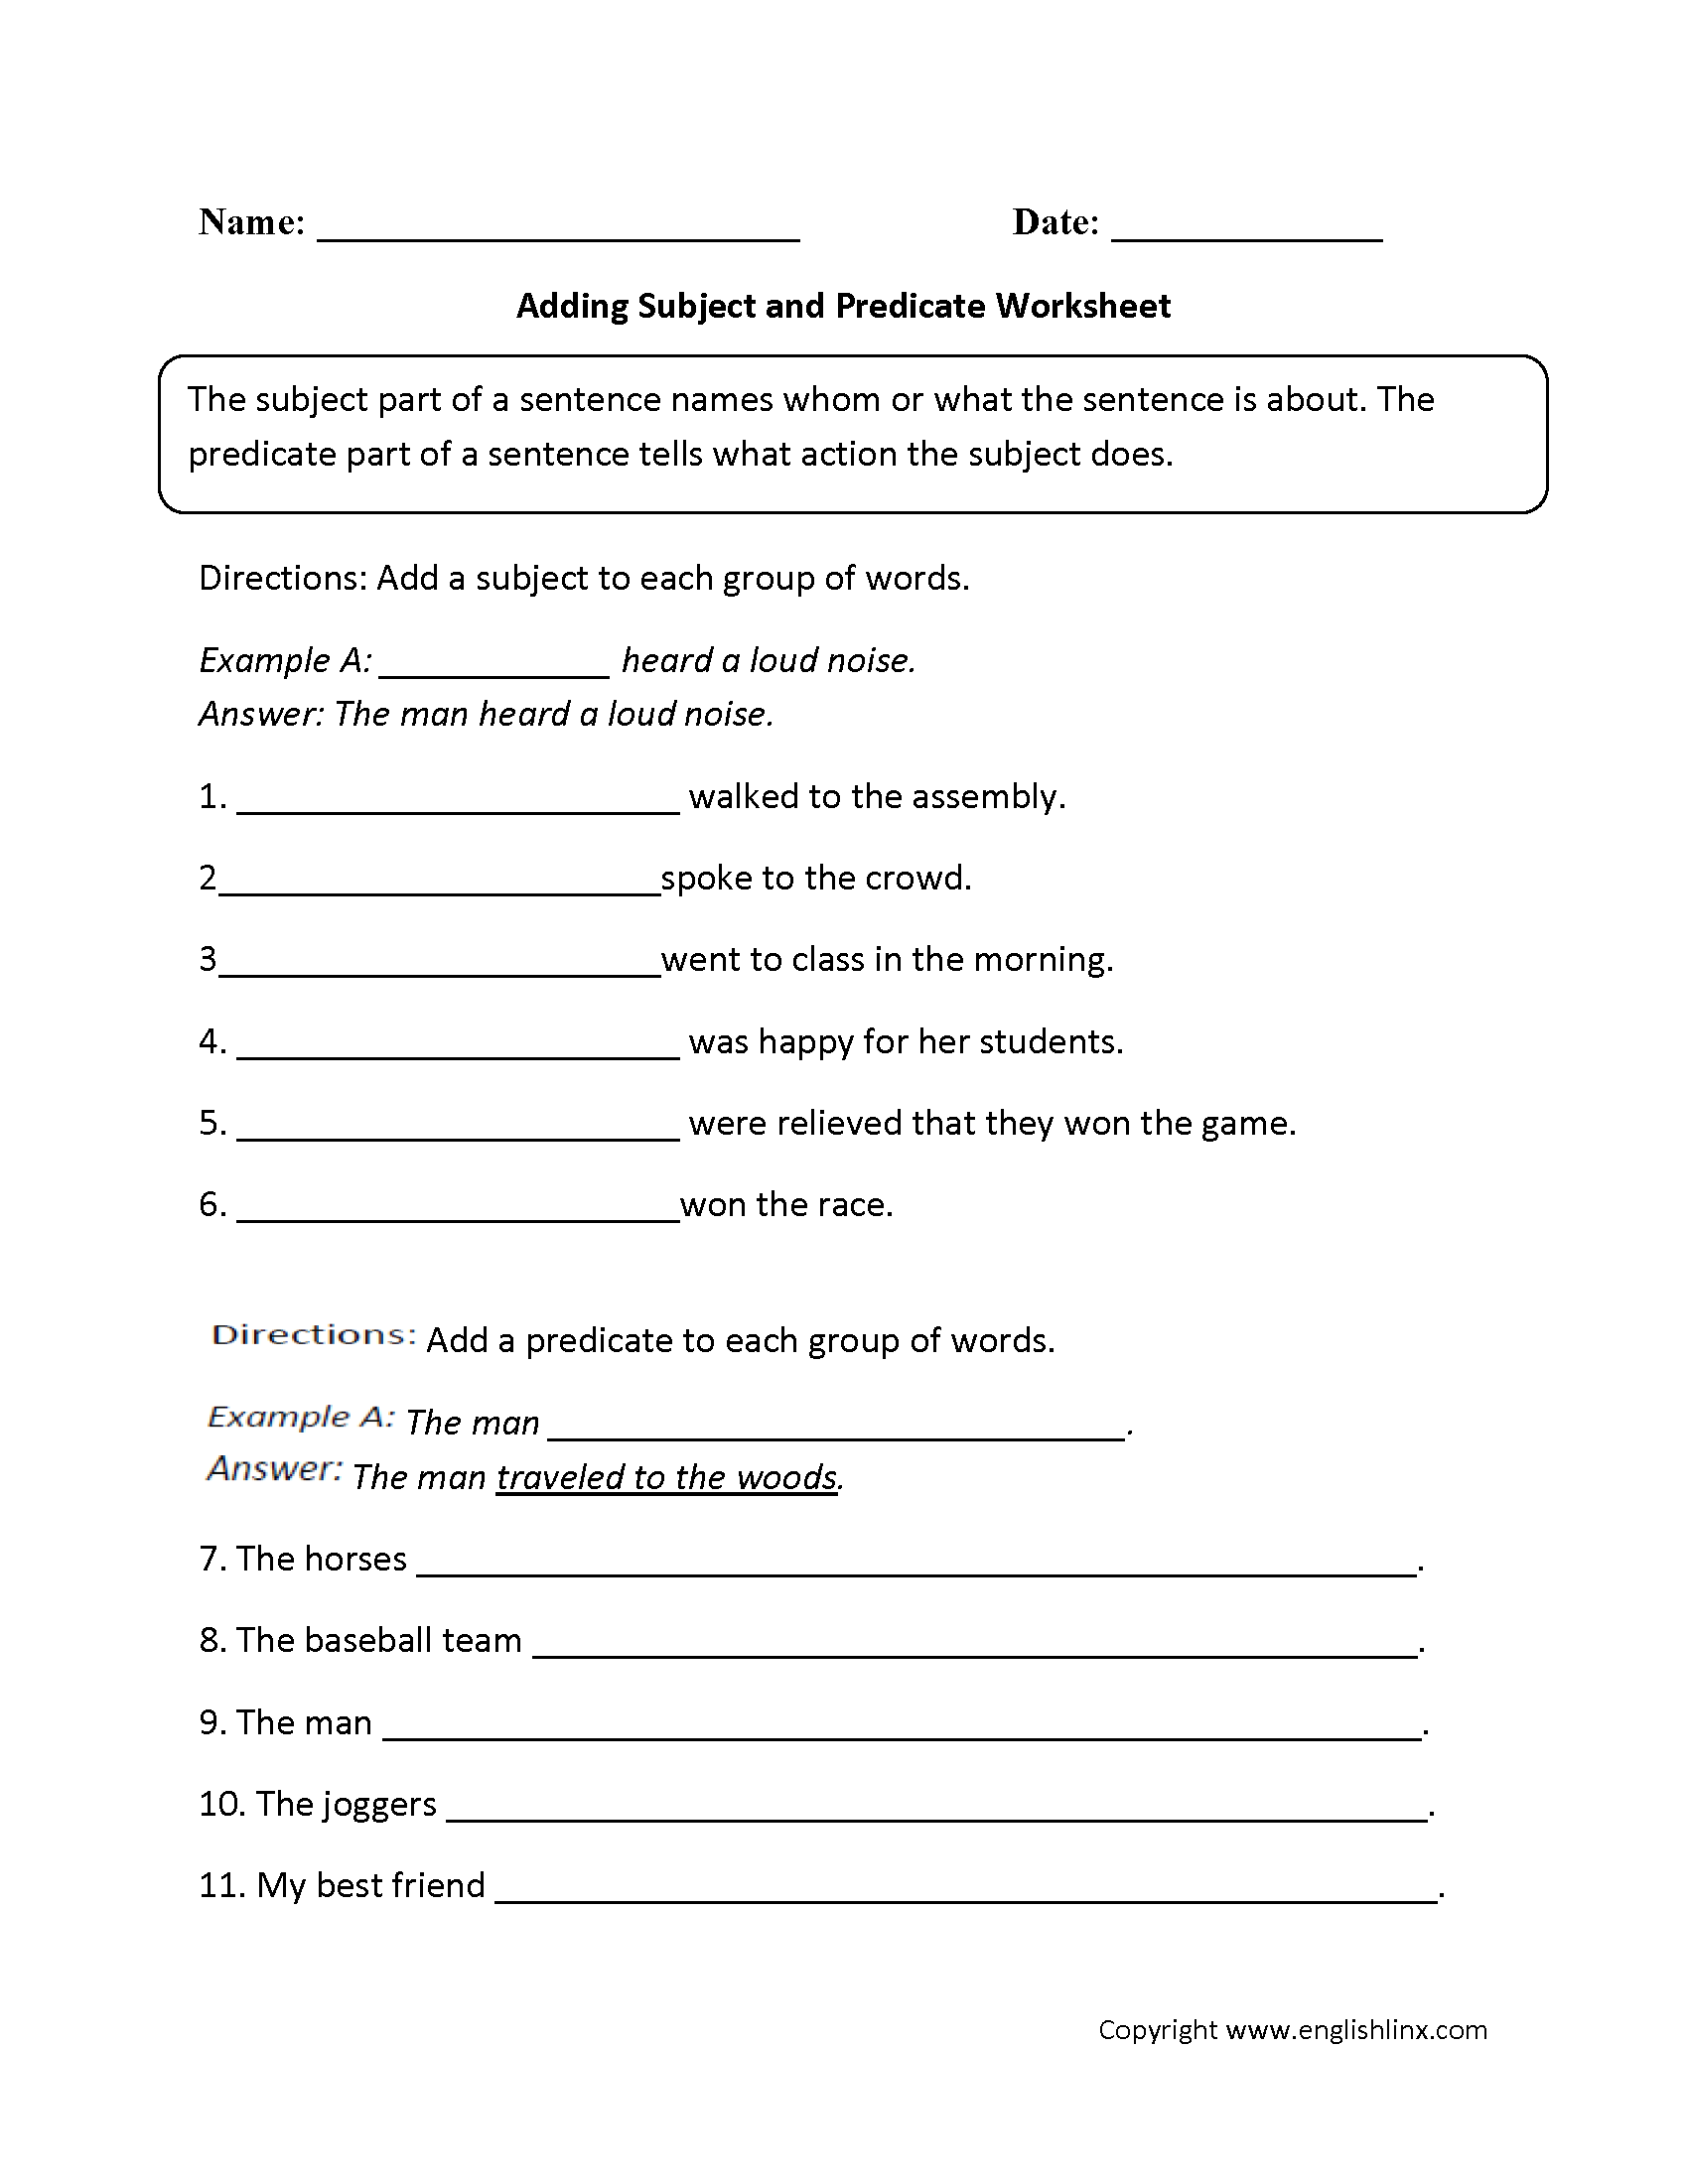 Content by Subject Worksheets   Grammar Worksheets   Subject and predicate  worksheets [ 2200 x 1700 Pixel ]